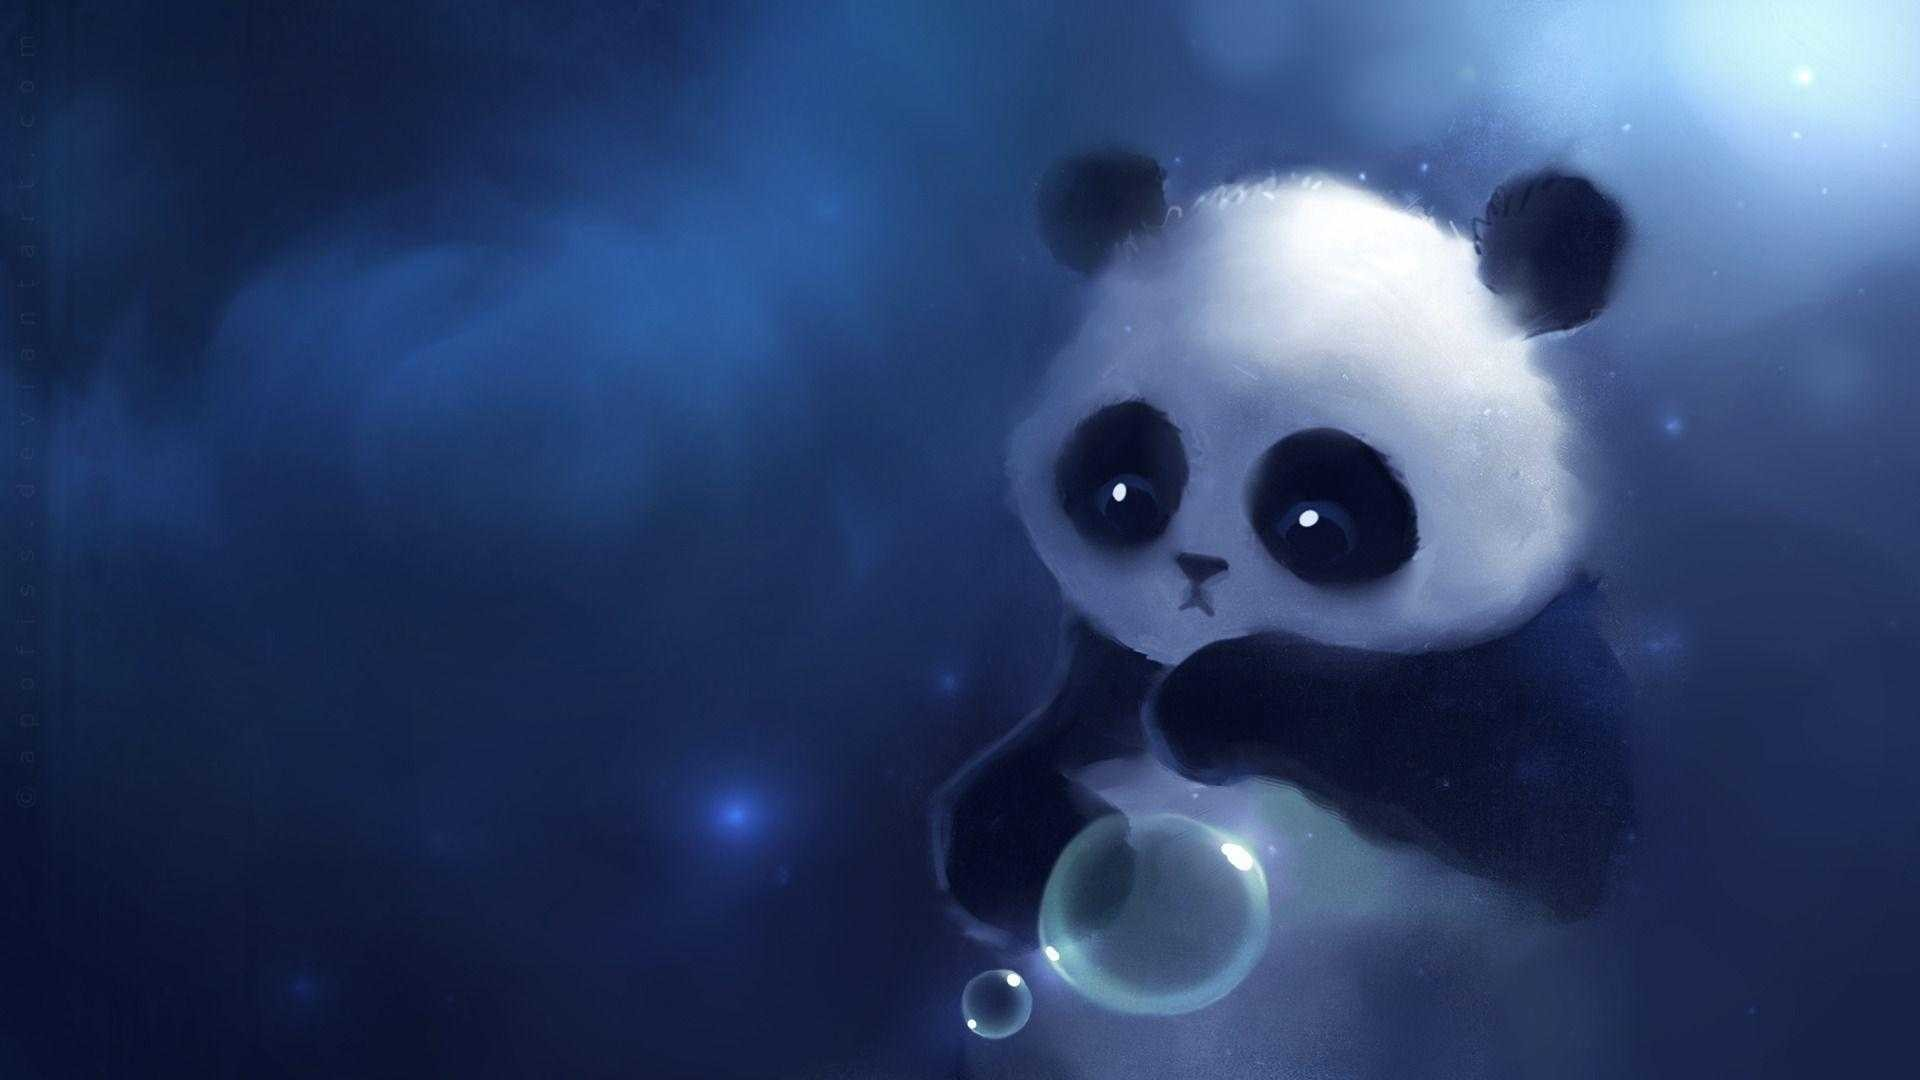 Cute Wallpapers For Computer 74 Background Pictures